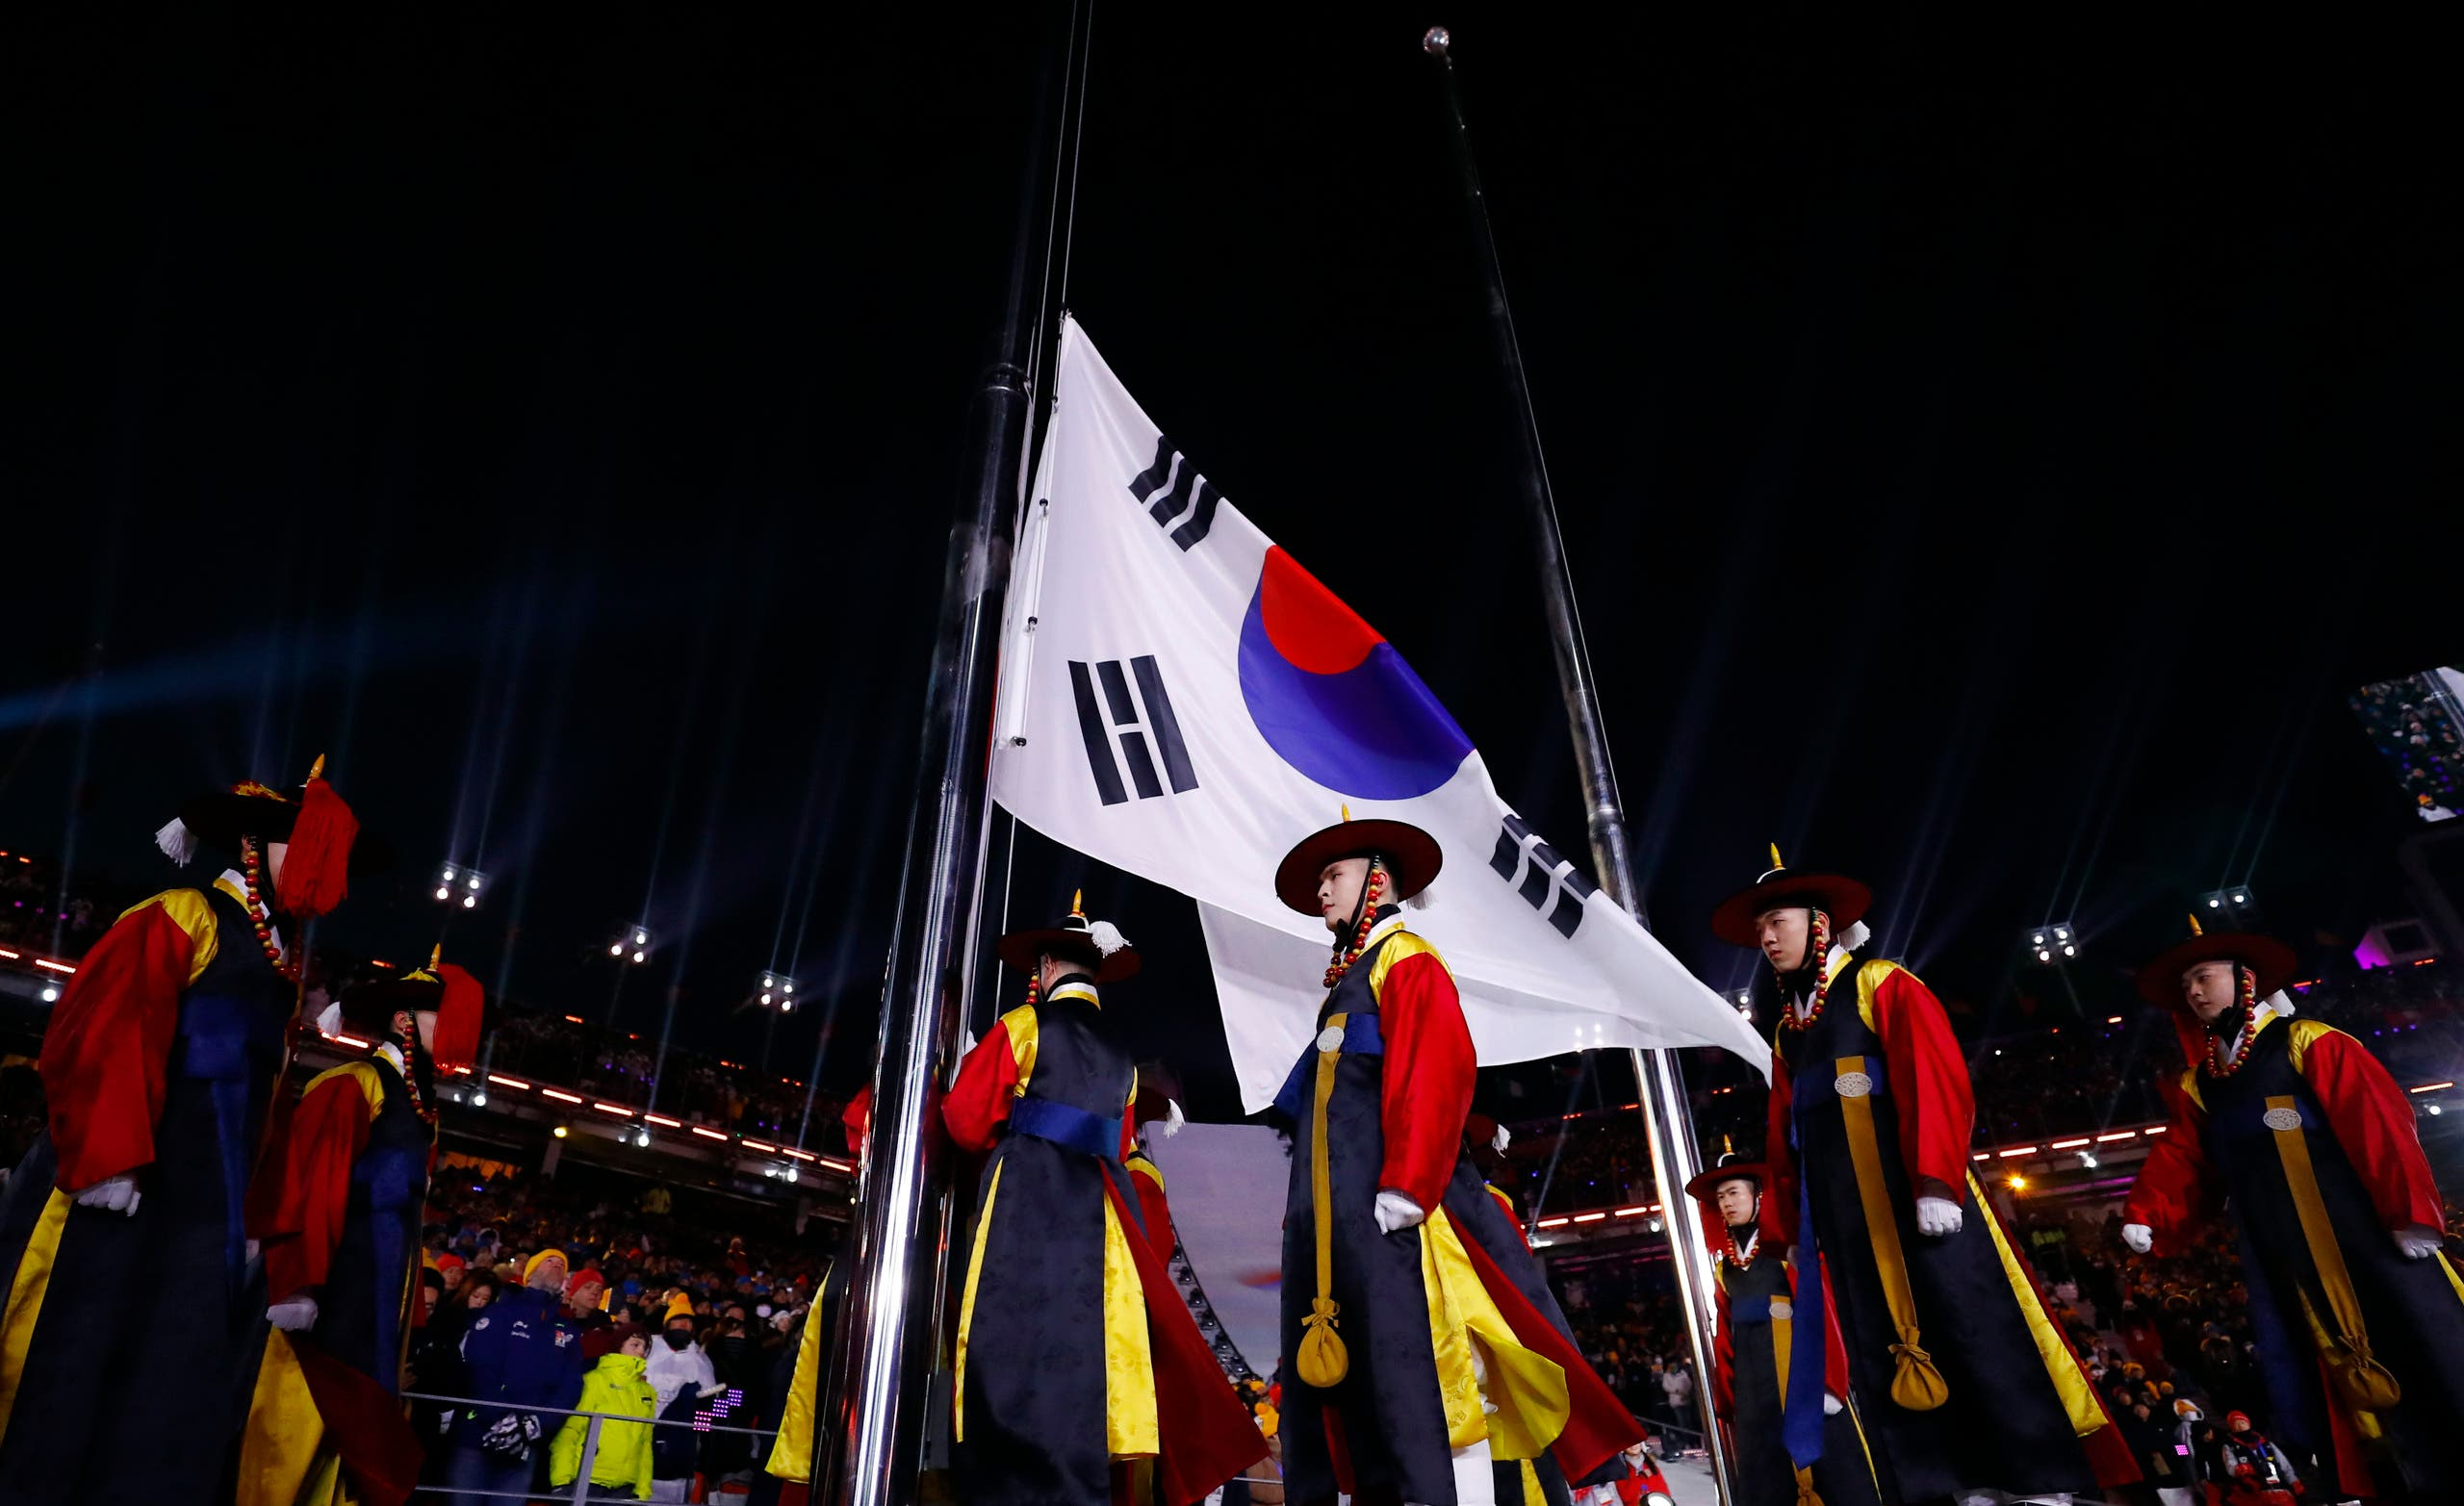 Pyeongchang 2018 Winter Olympics – Opening Ceremony – Pyeongchang Olympic Stadium- Pyeongchang, South Korea – February 9, 2018 - The flag of South Korea is raised during the opening ceremony. REUTERS/Toby Melville